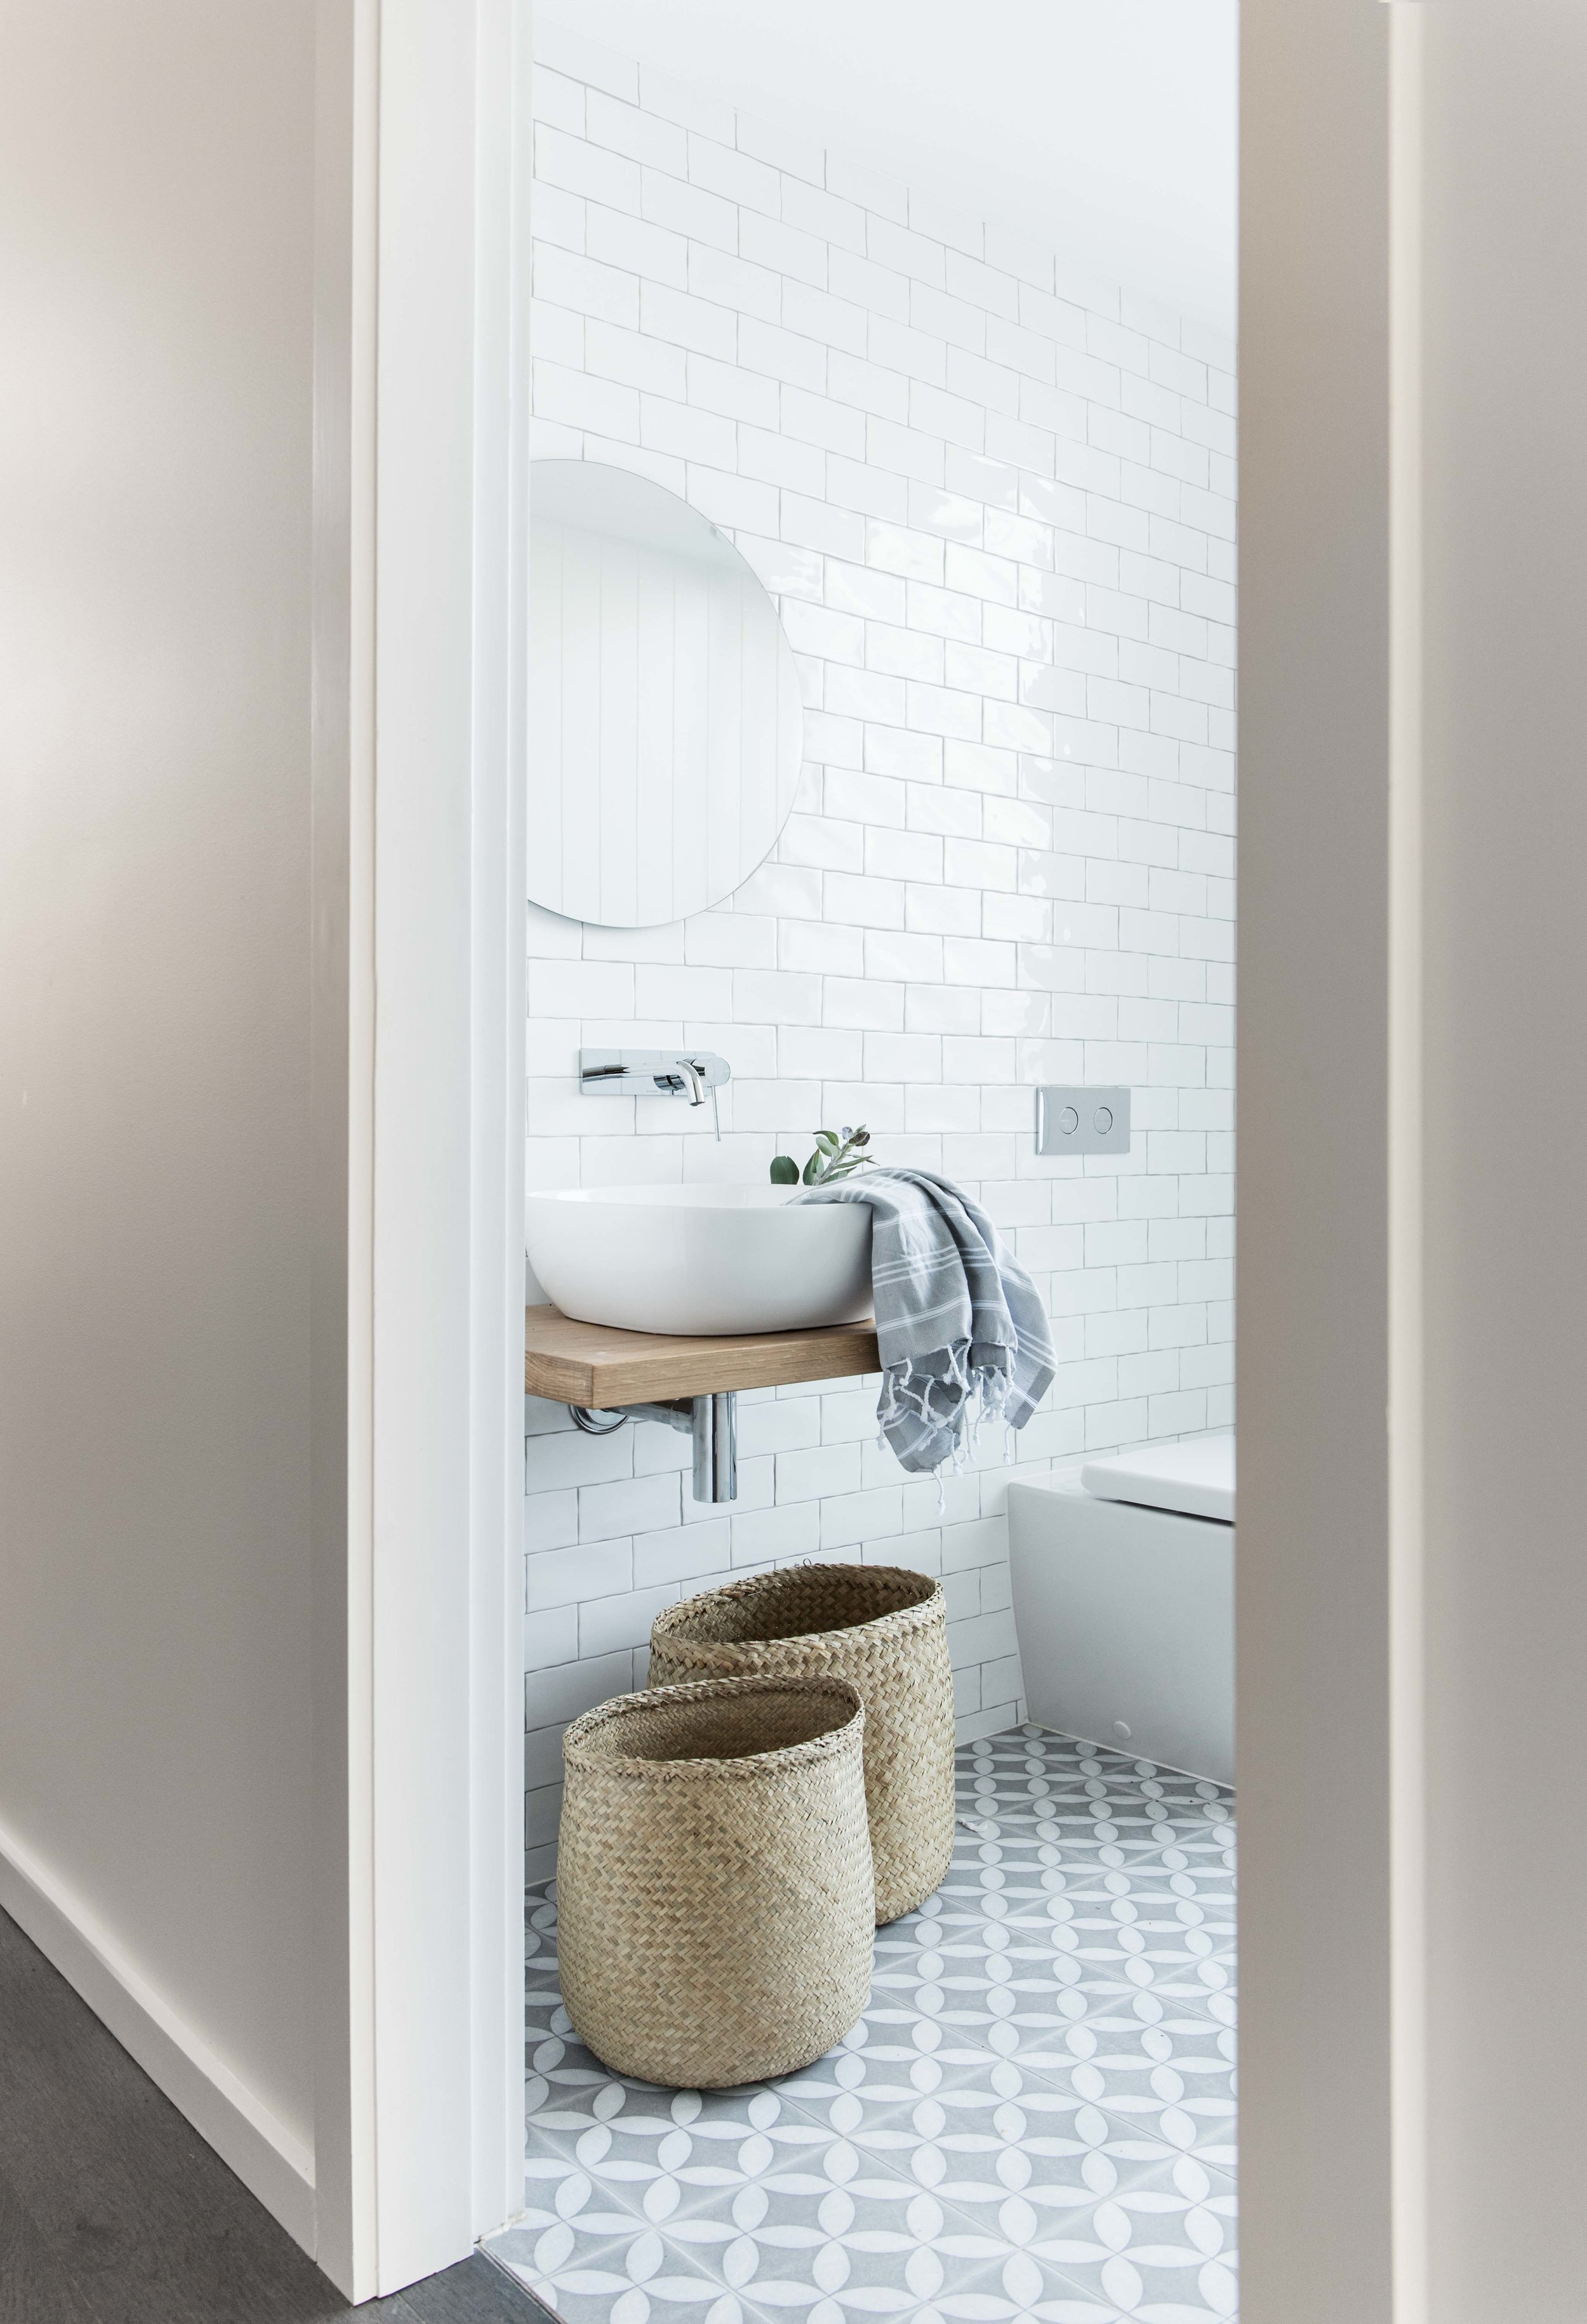 2 in 12 Investment Bathroom Low res-1.jpg